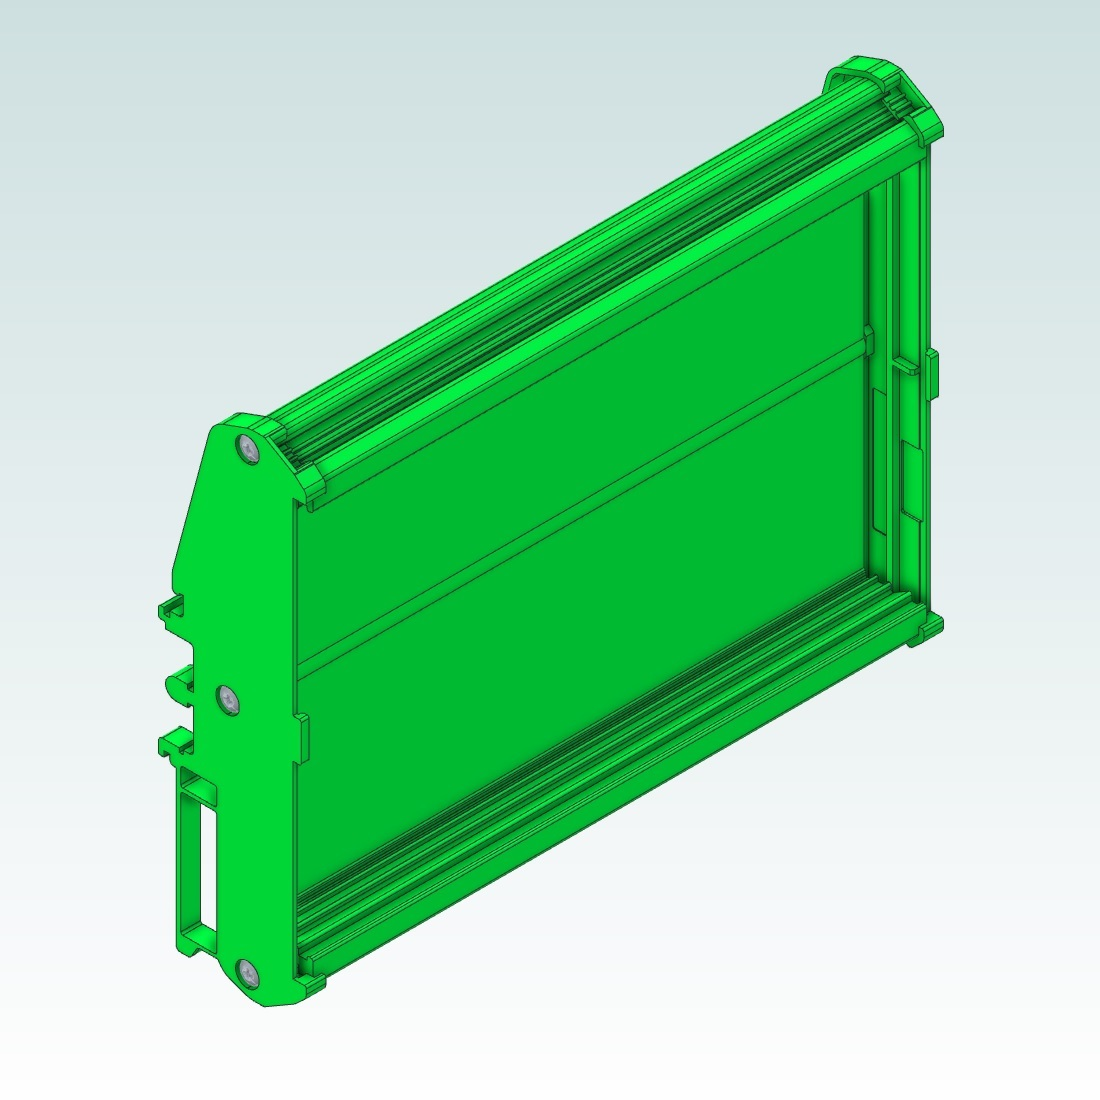 23401 dinrail mount for eurocard pcb 100x160mm